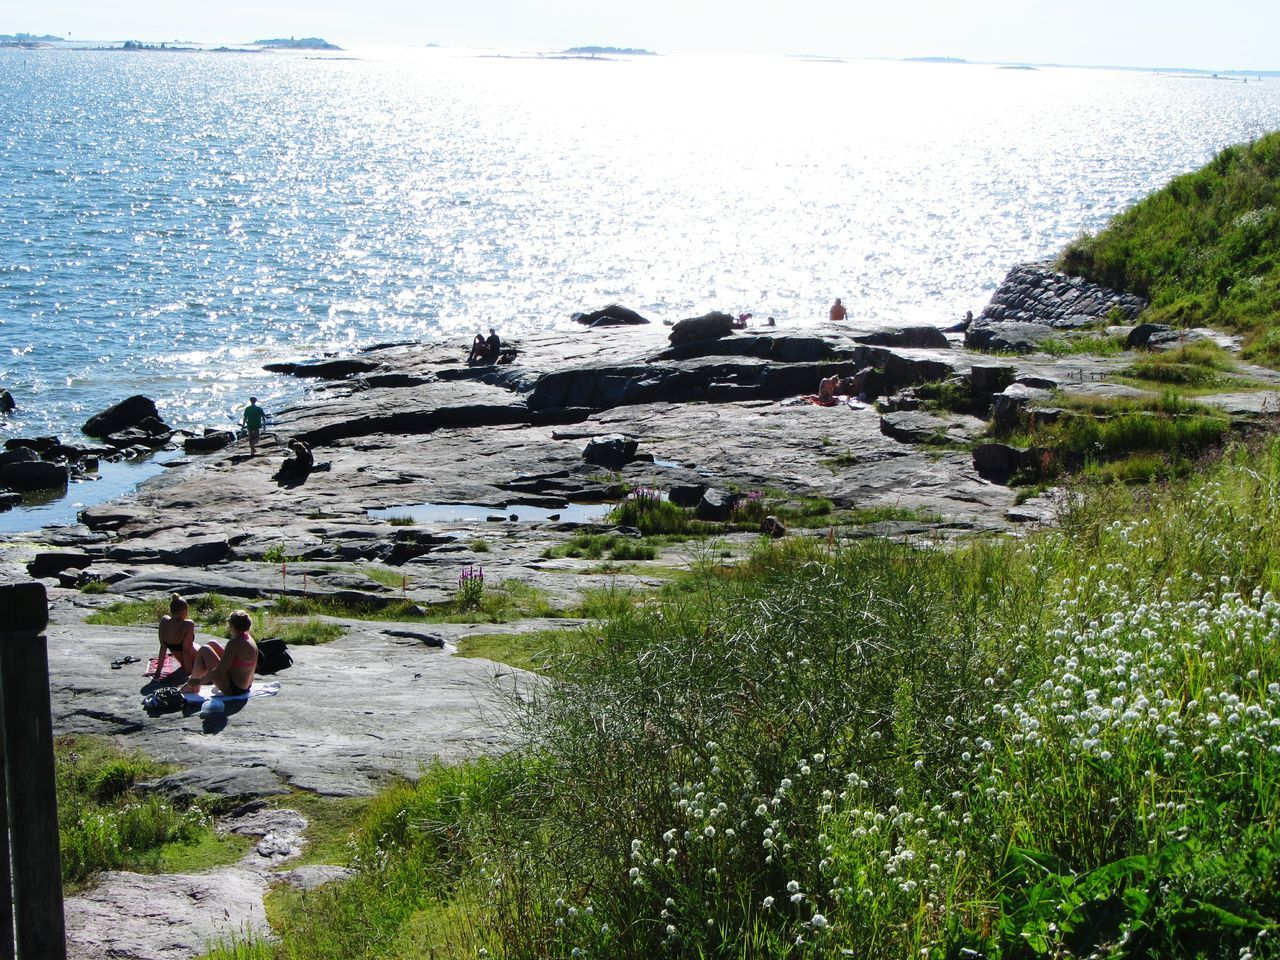 People Relaxing In The Sun On The Rocks Sea Sea And Sky Summertime Sunshine Reflections Horizon Islands Gulf Of Finland